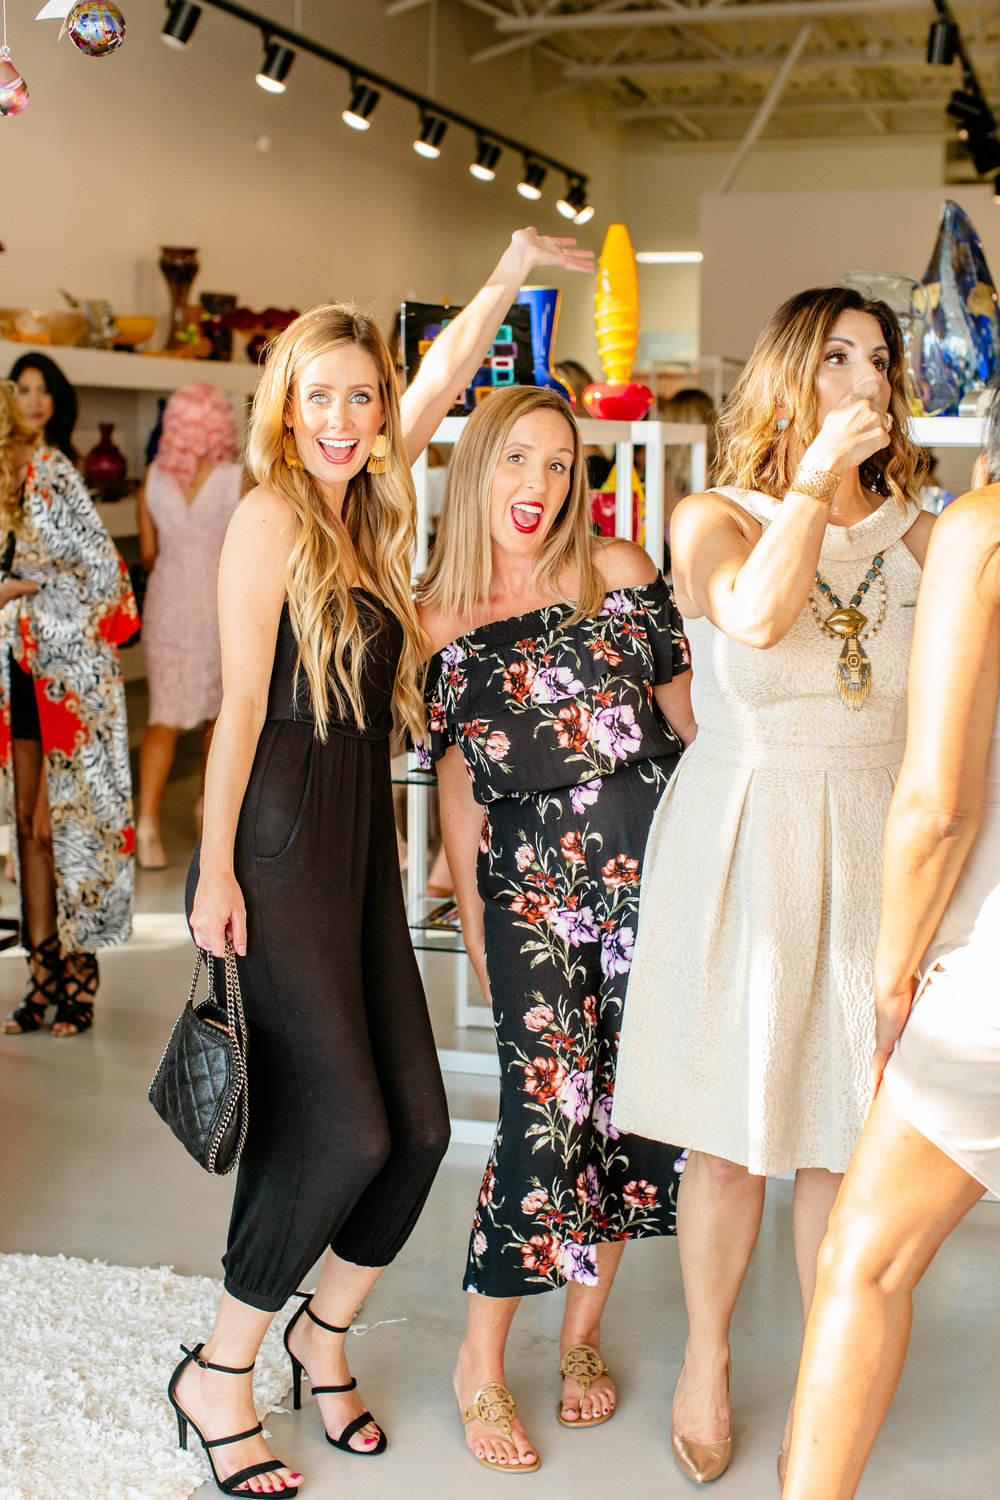 Alexa-Vossler-Photo_Dallas-Event-Photographer_Brite-Bar-Beauty-2018-Lipstick-Launch-Party-133.jpg